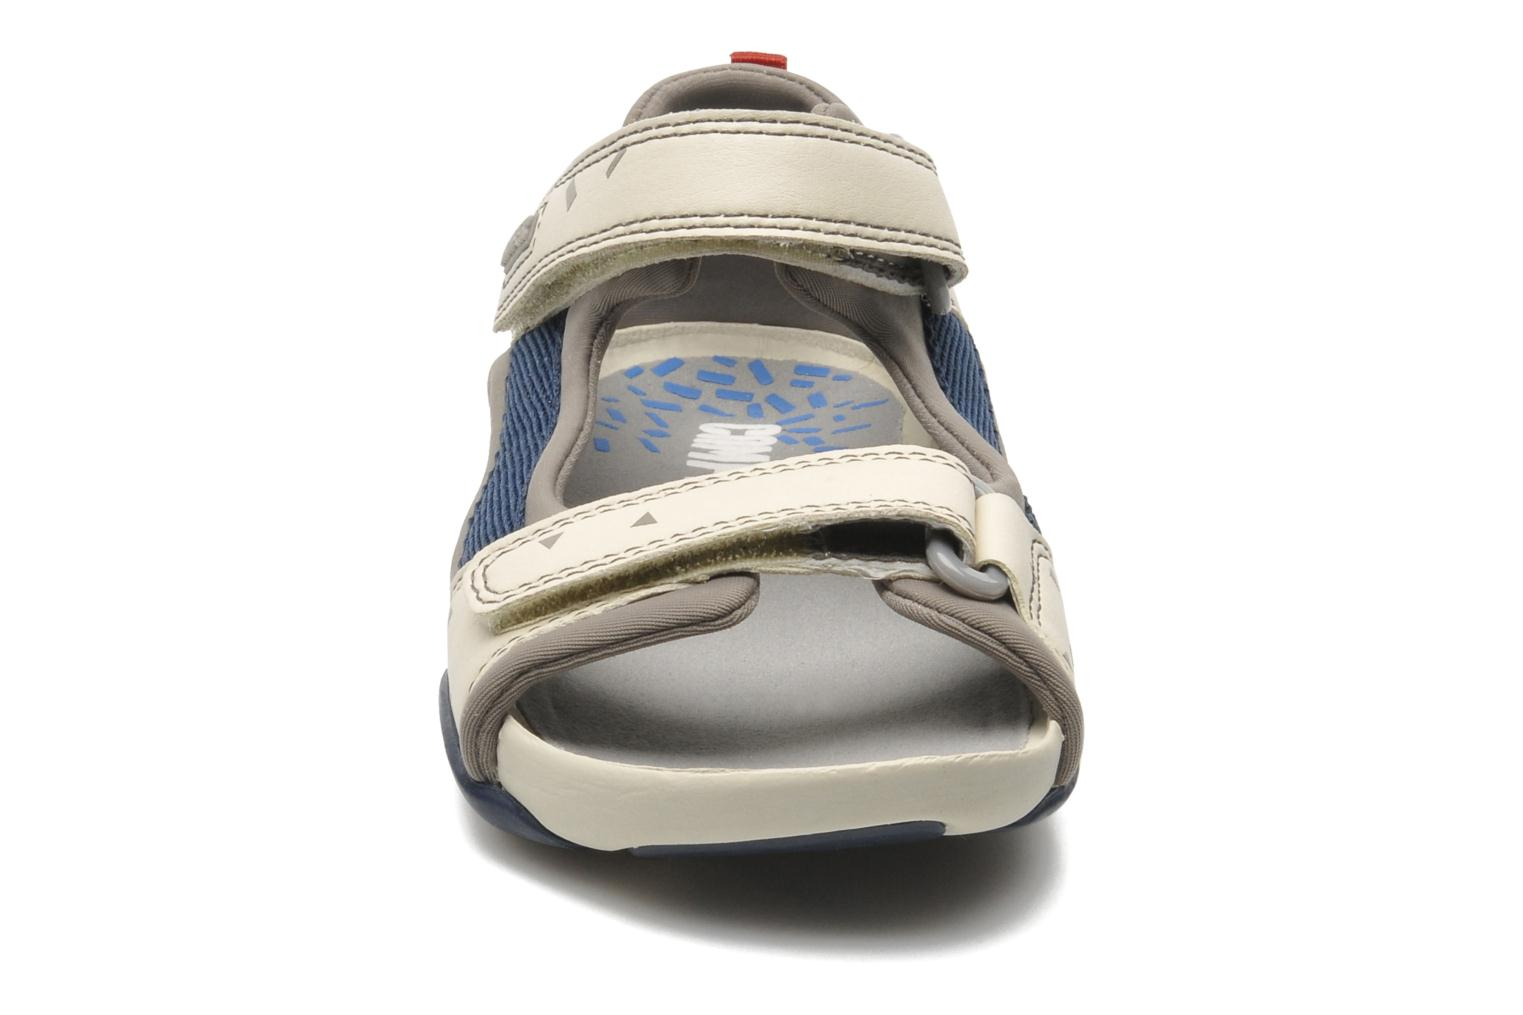 Ous Kids 80188 Jedi Pau Pri.Inox/Eggs Pau-Denim